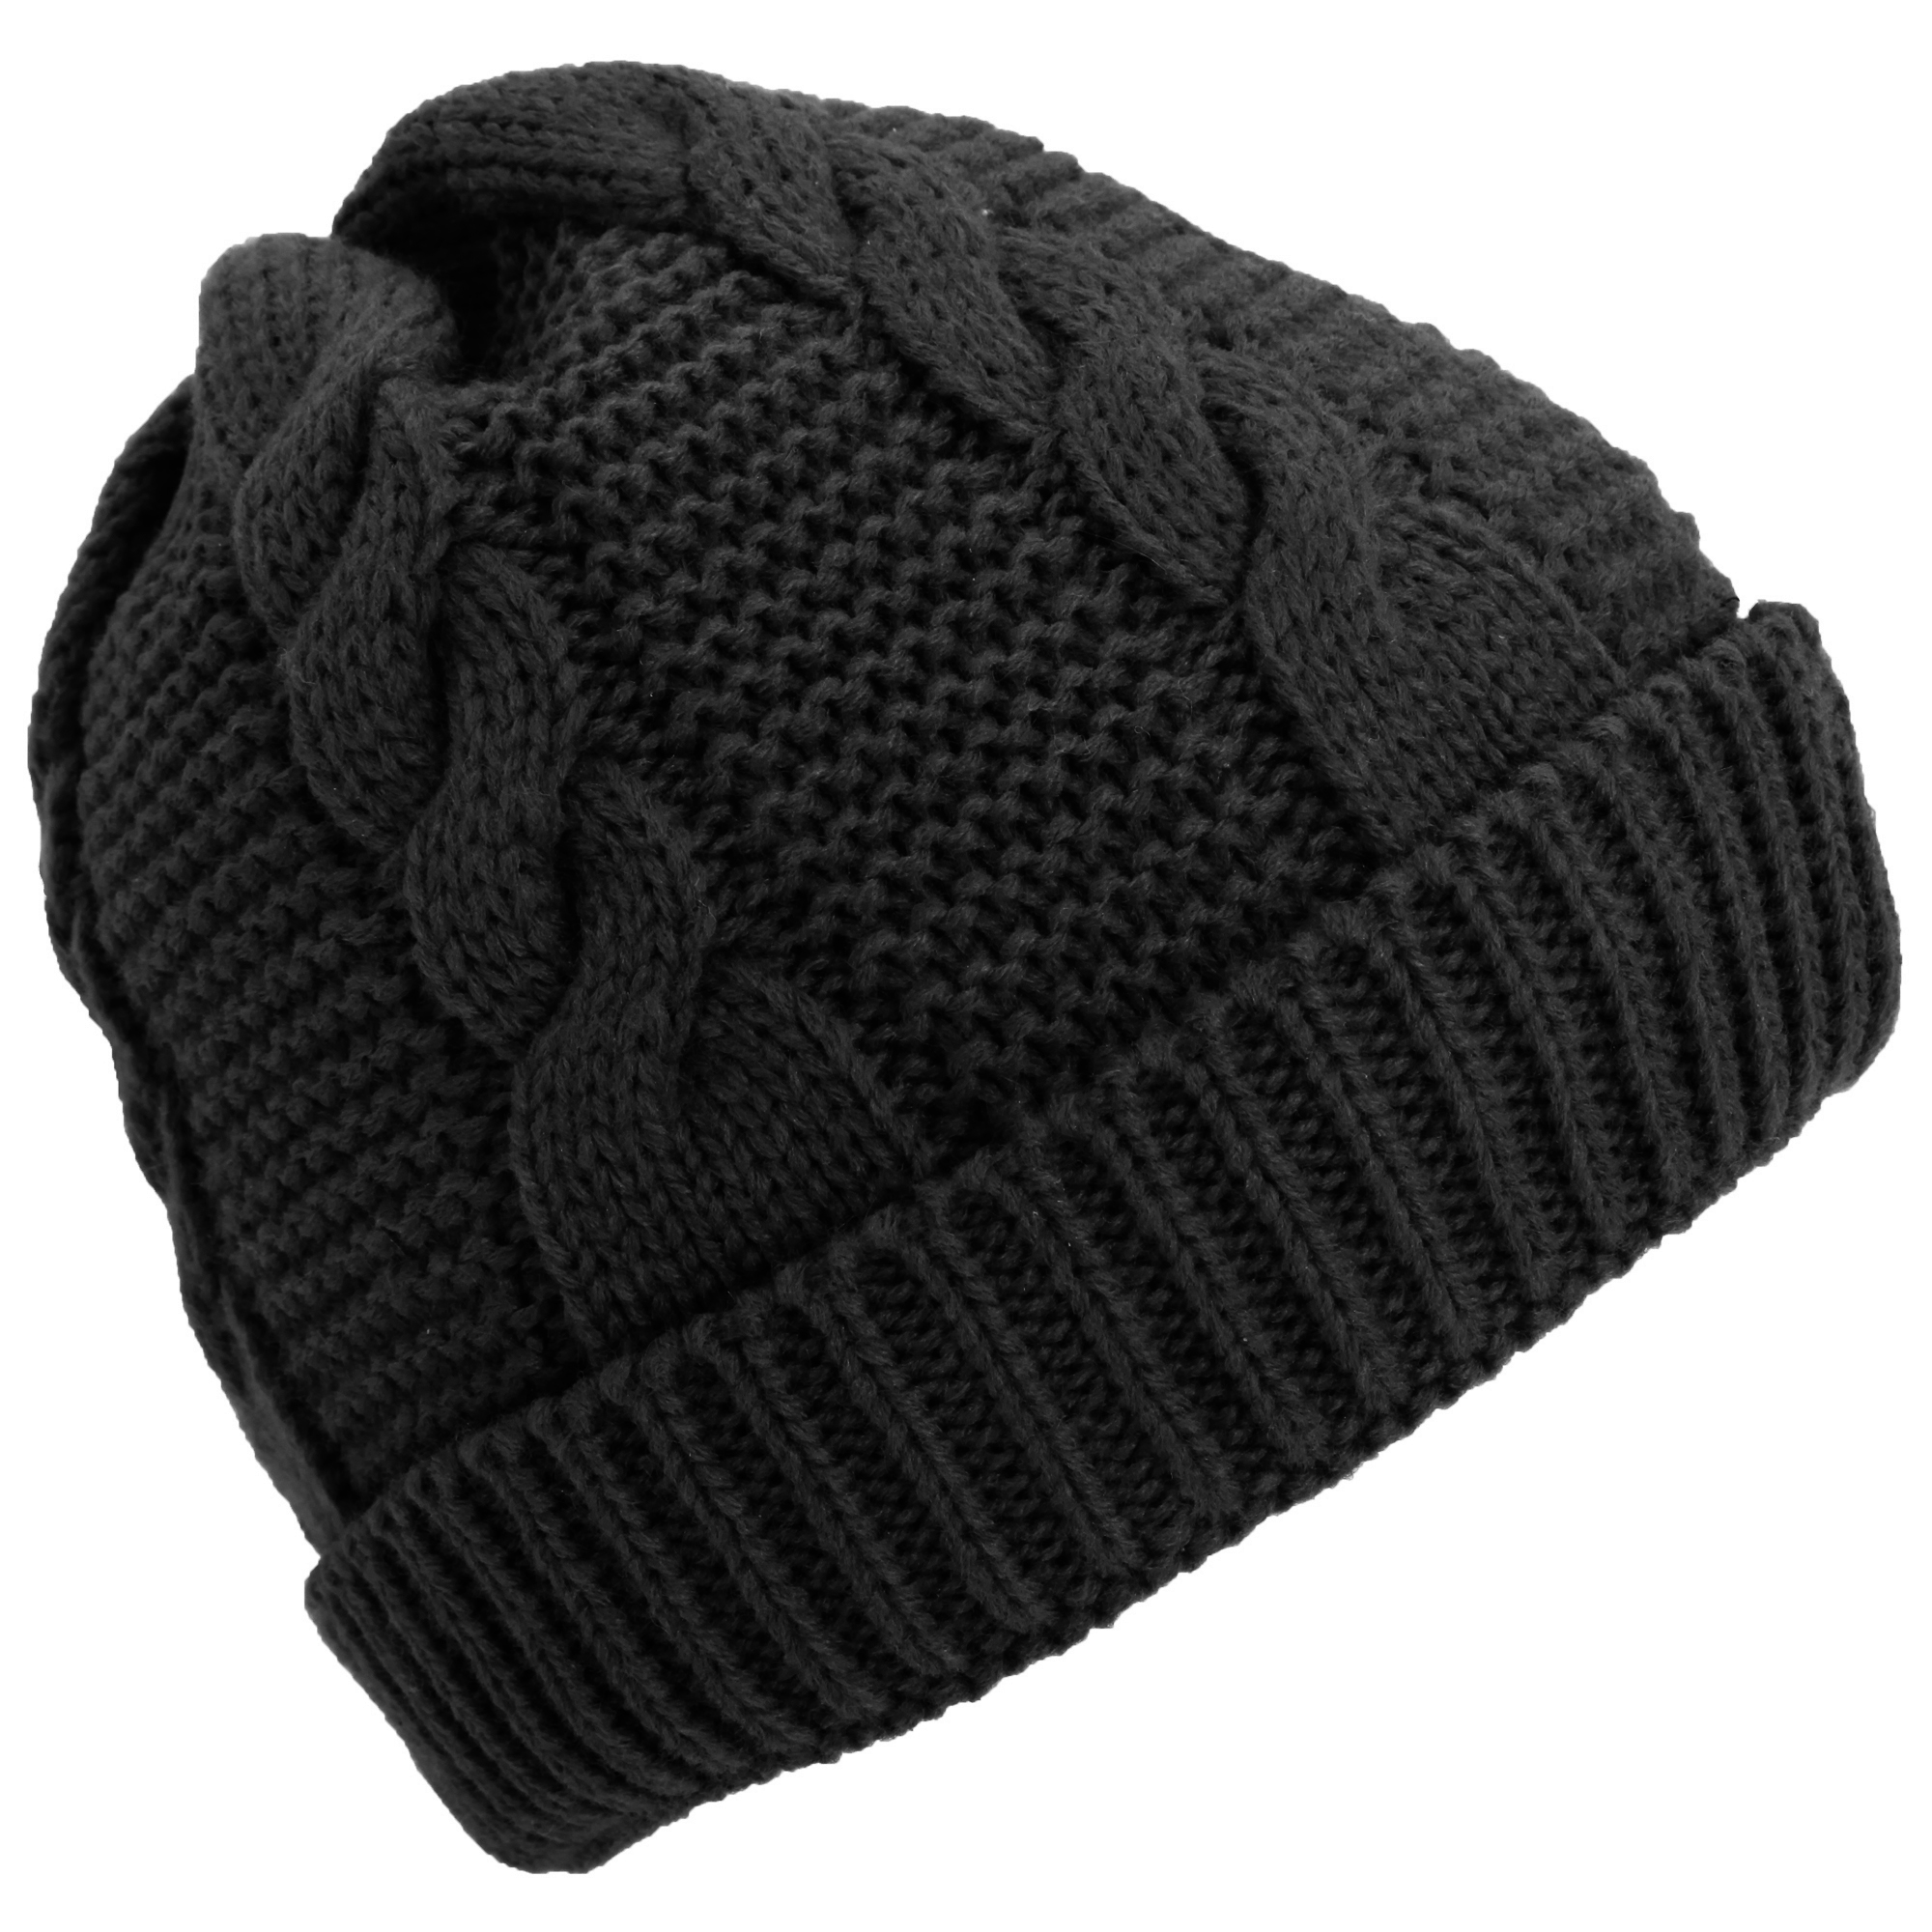 Knitting Pattern Lined Hat : Ladies/Womens Cable Knit Fleece Lined Winter Beanie Hat eBay